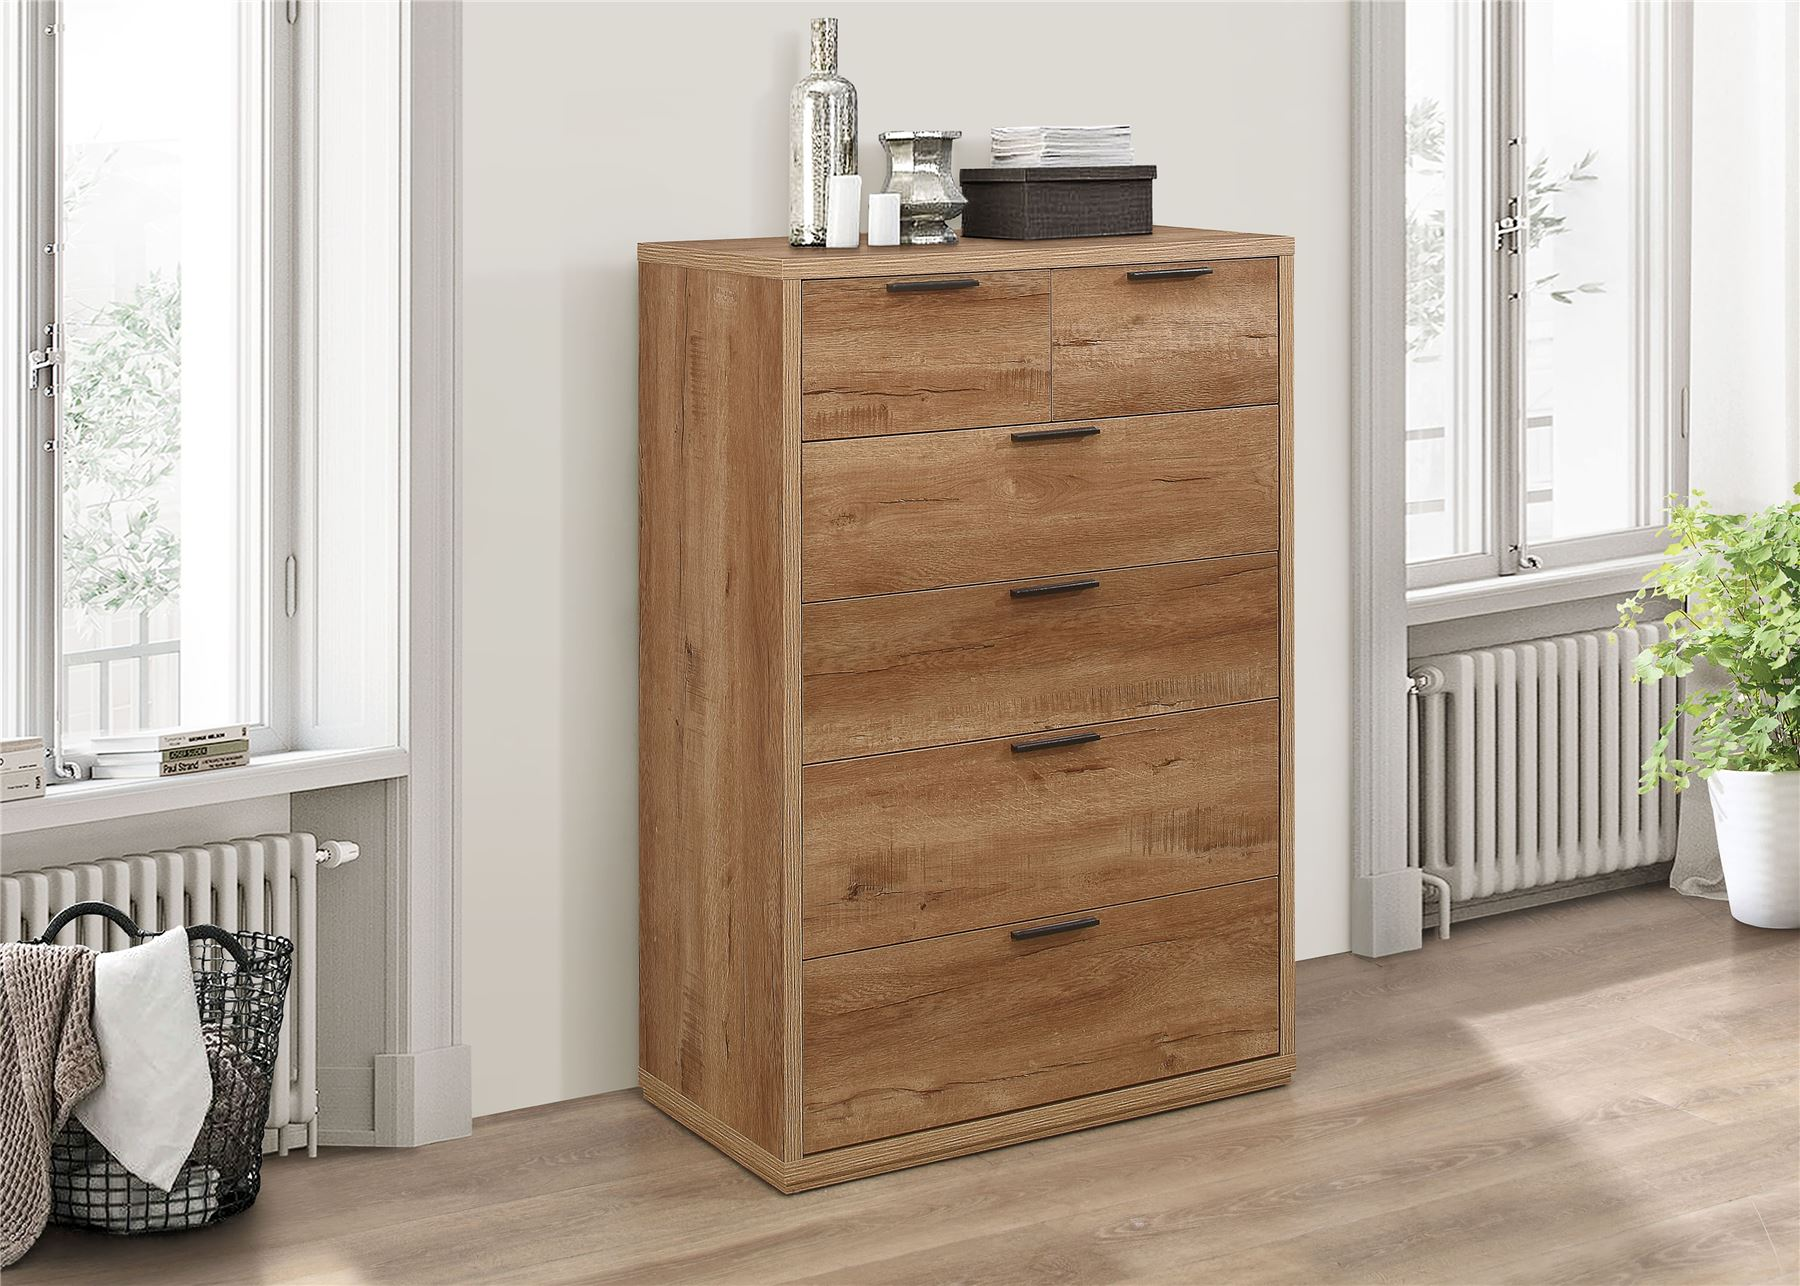 Birlea Stockwell Rustic Oak 4+2 large Chest of Drawers Urban Industrial design